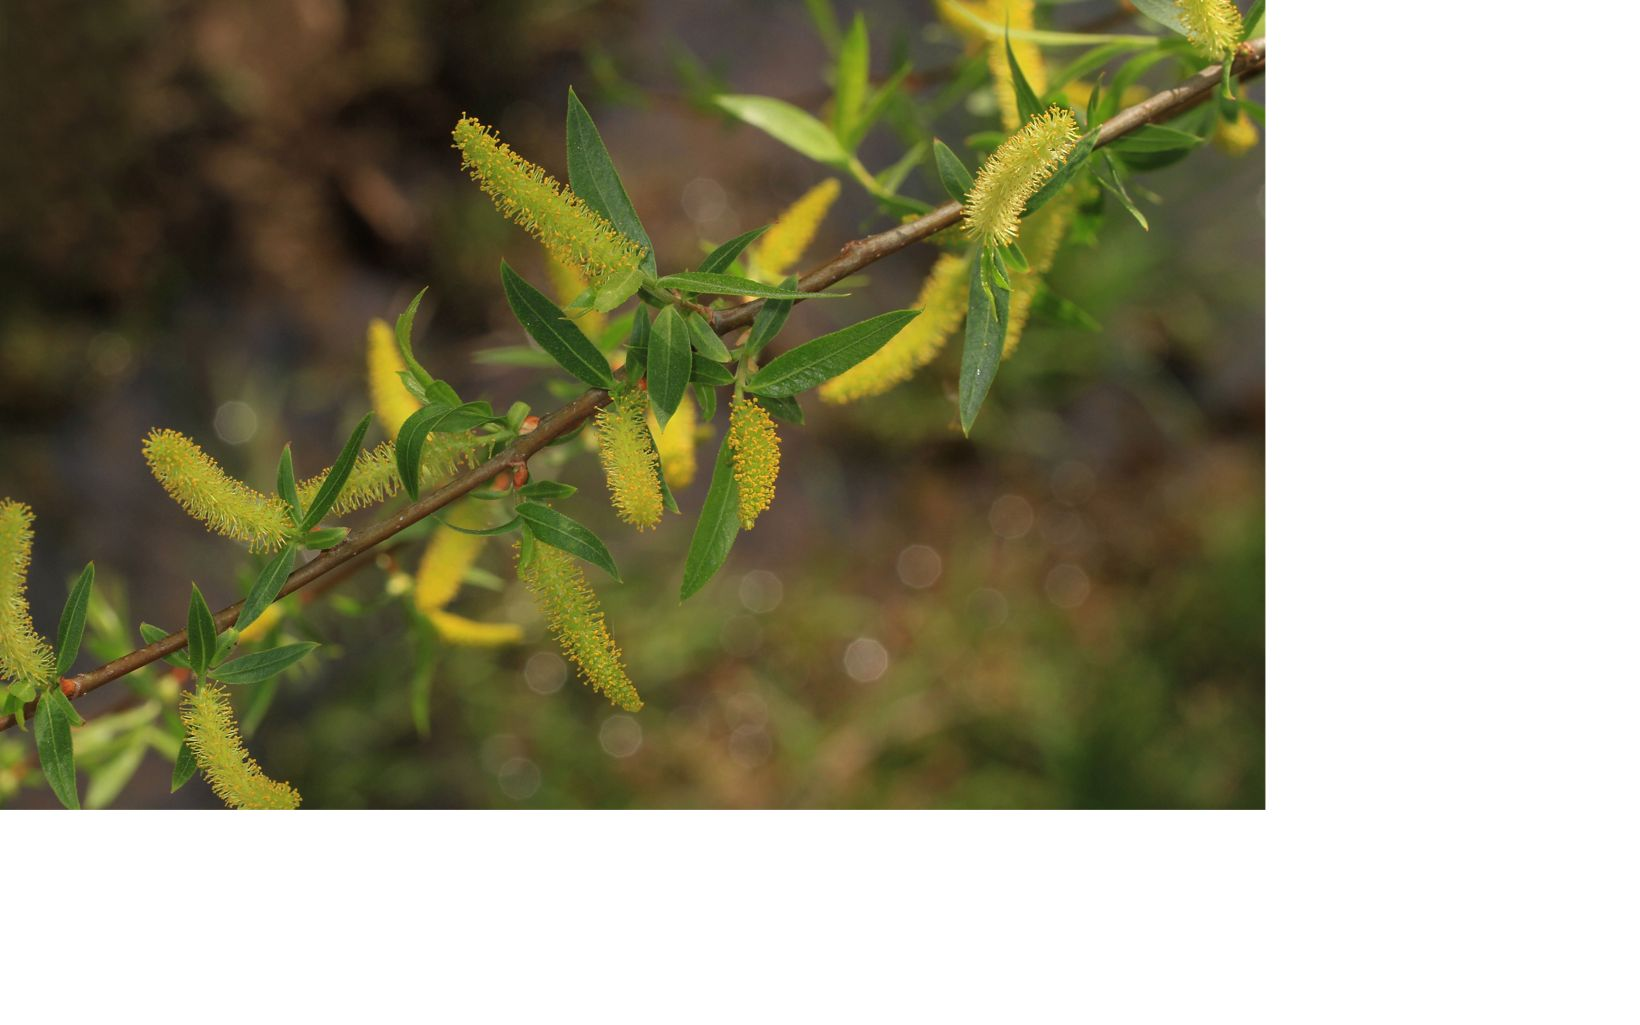 Small tree branch with slender green leaves and bright yellow seed pods.